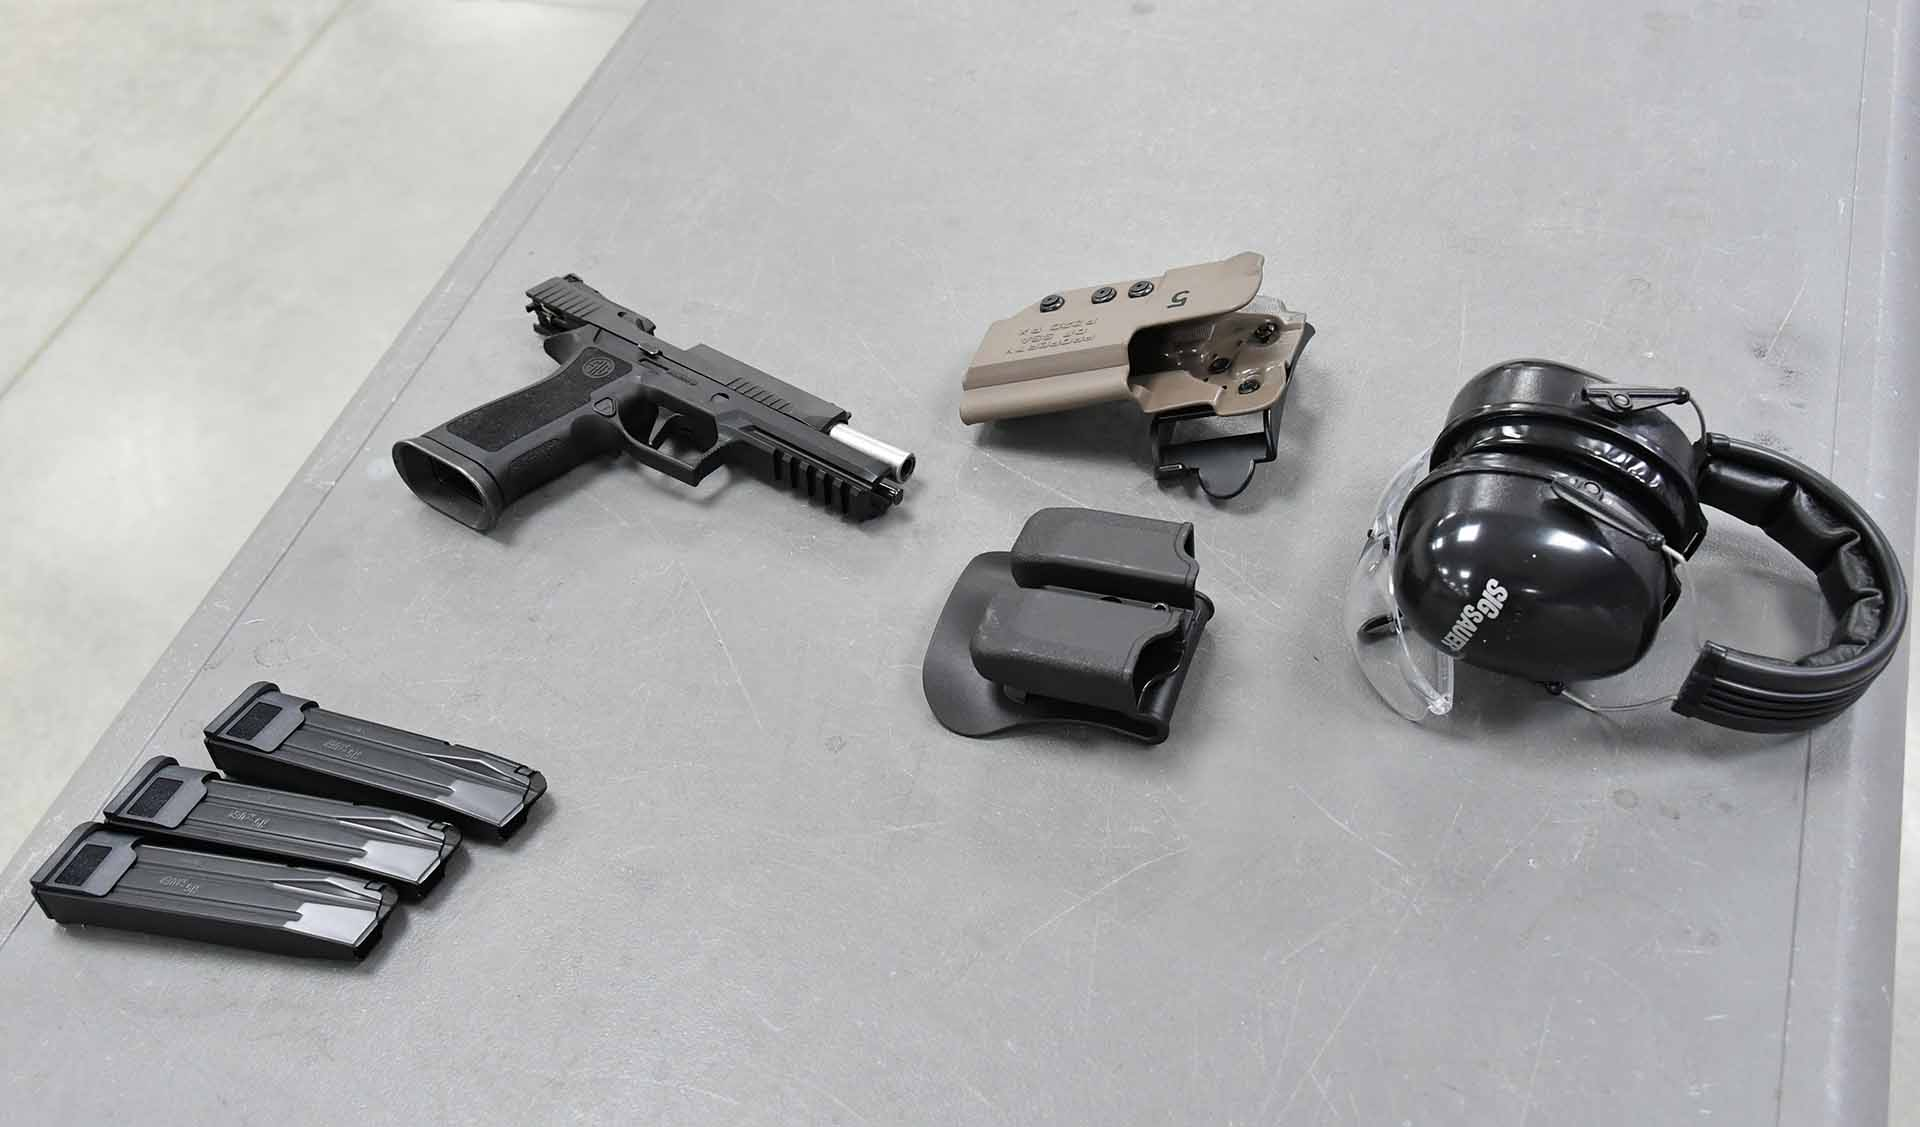 SIG Sauer P320 X5 9mm pistol, three magazines, hearing and eye protection, a holter and mag holder